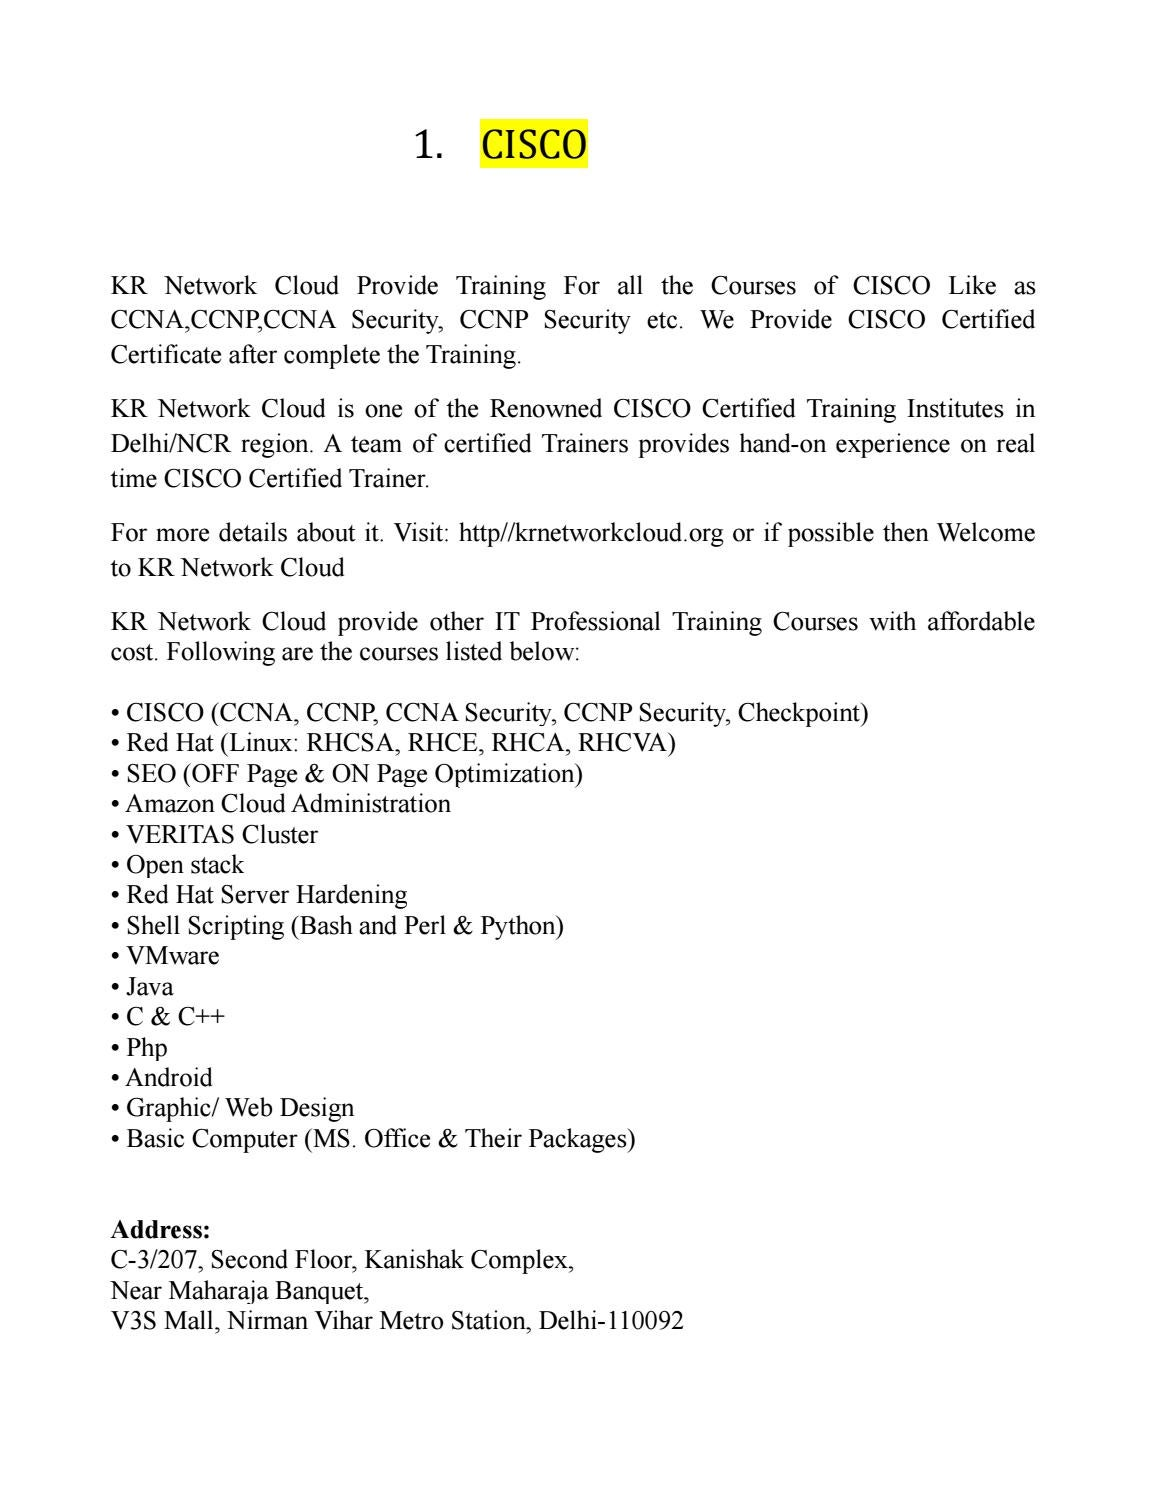 Cisco 2 By Krnetwork Cloud Issuu